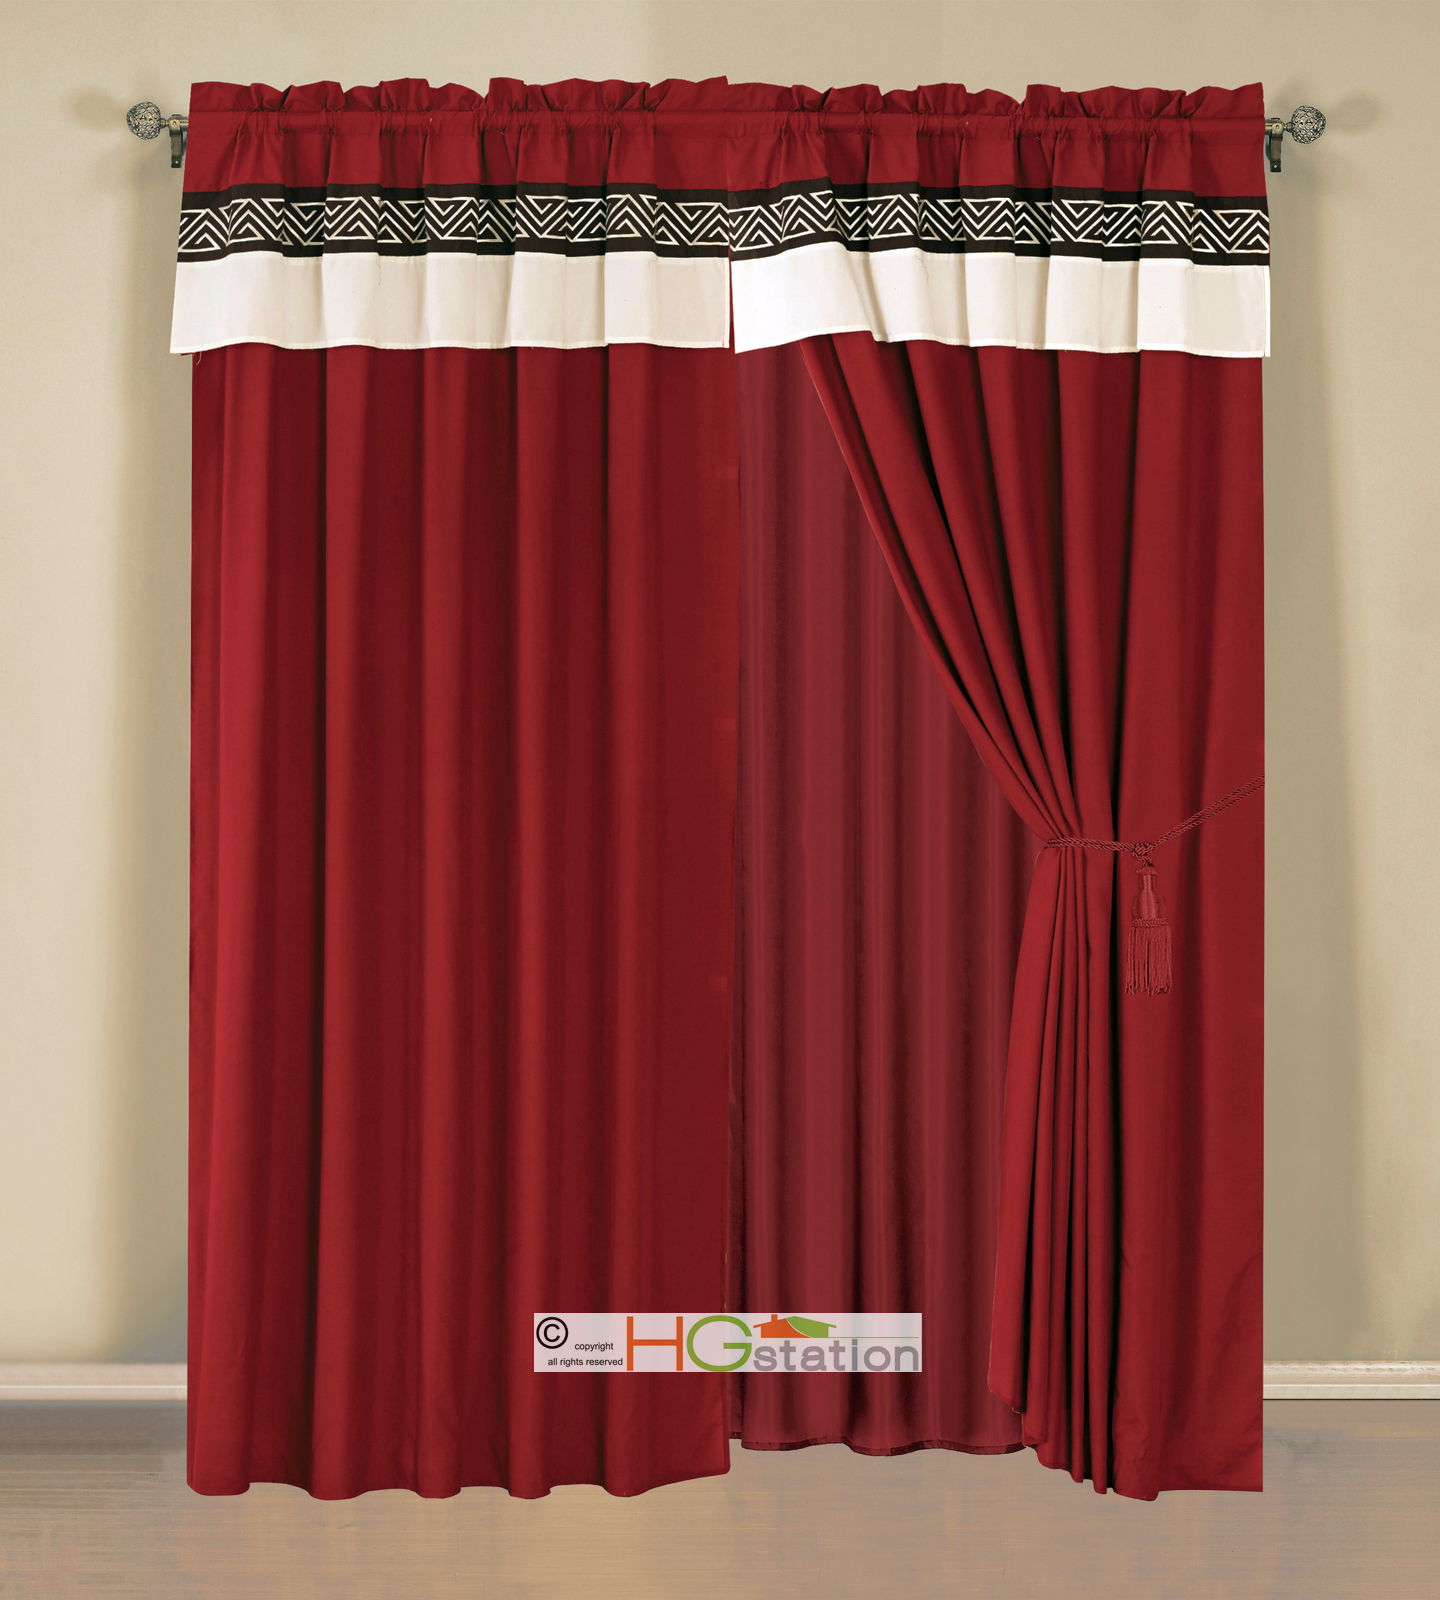 4 Pc Embroidery Triangle Meander Greek Key Curtain Set